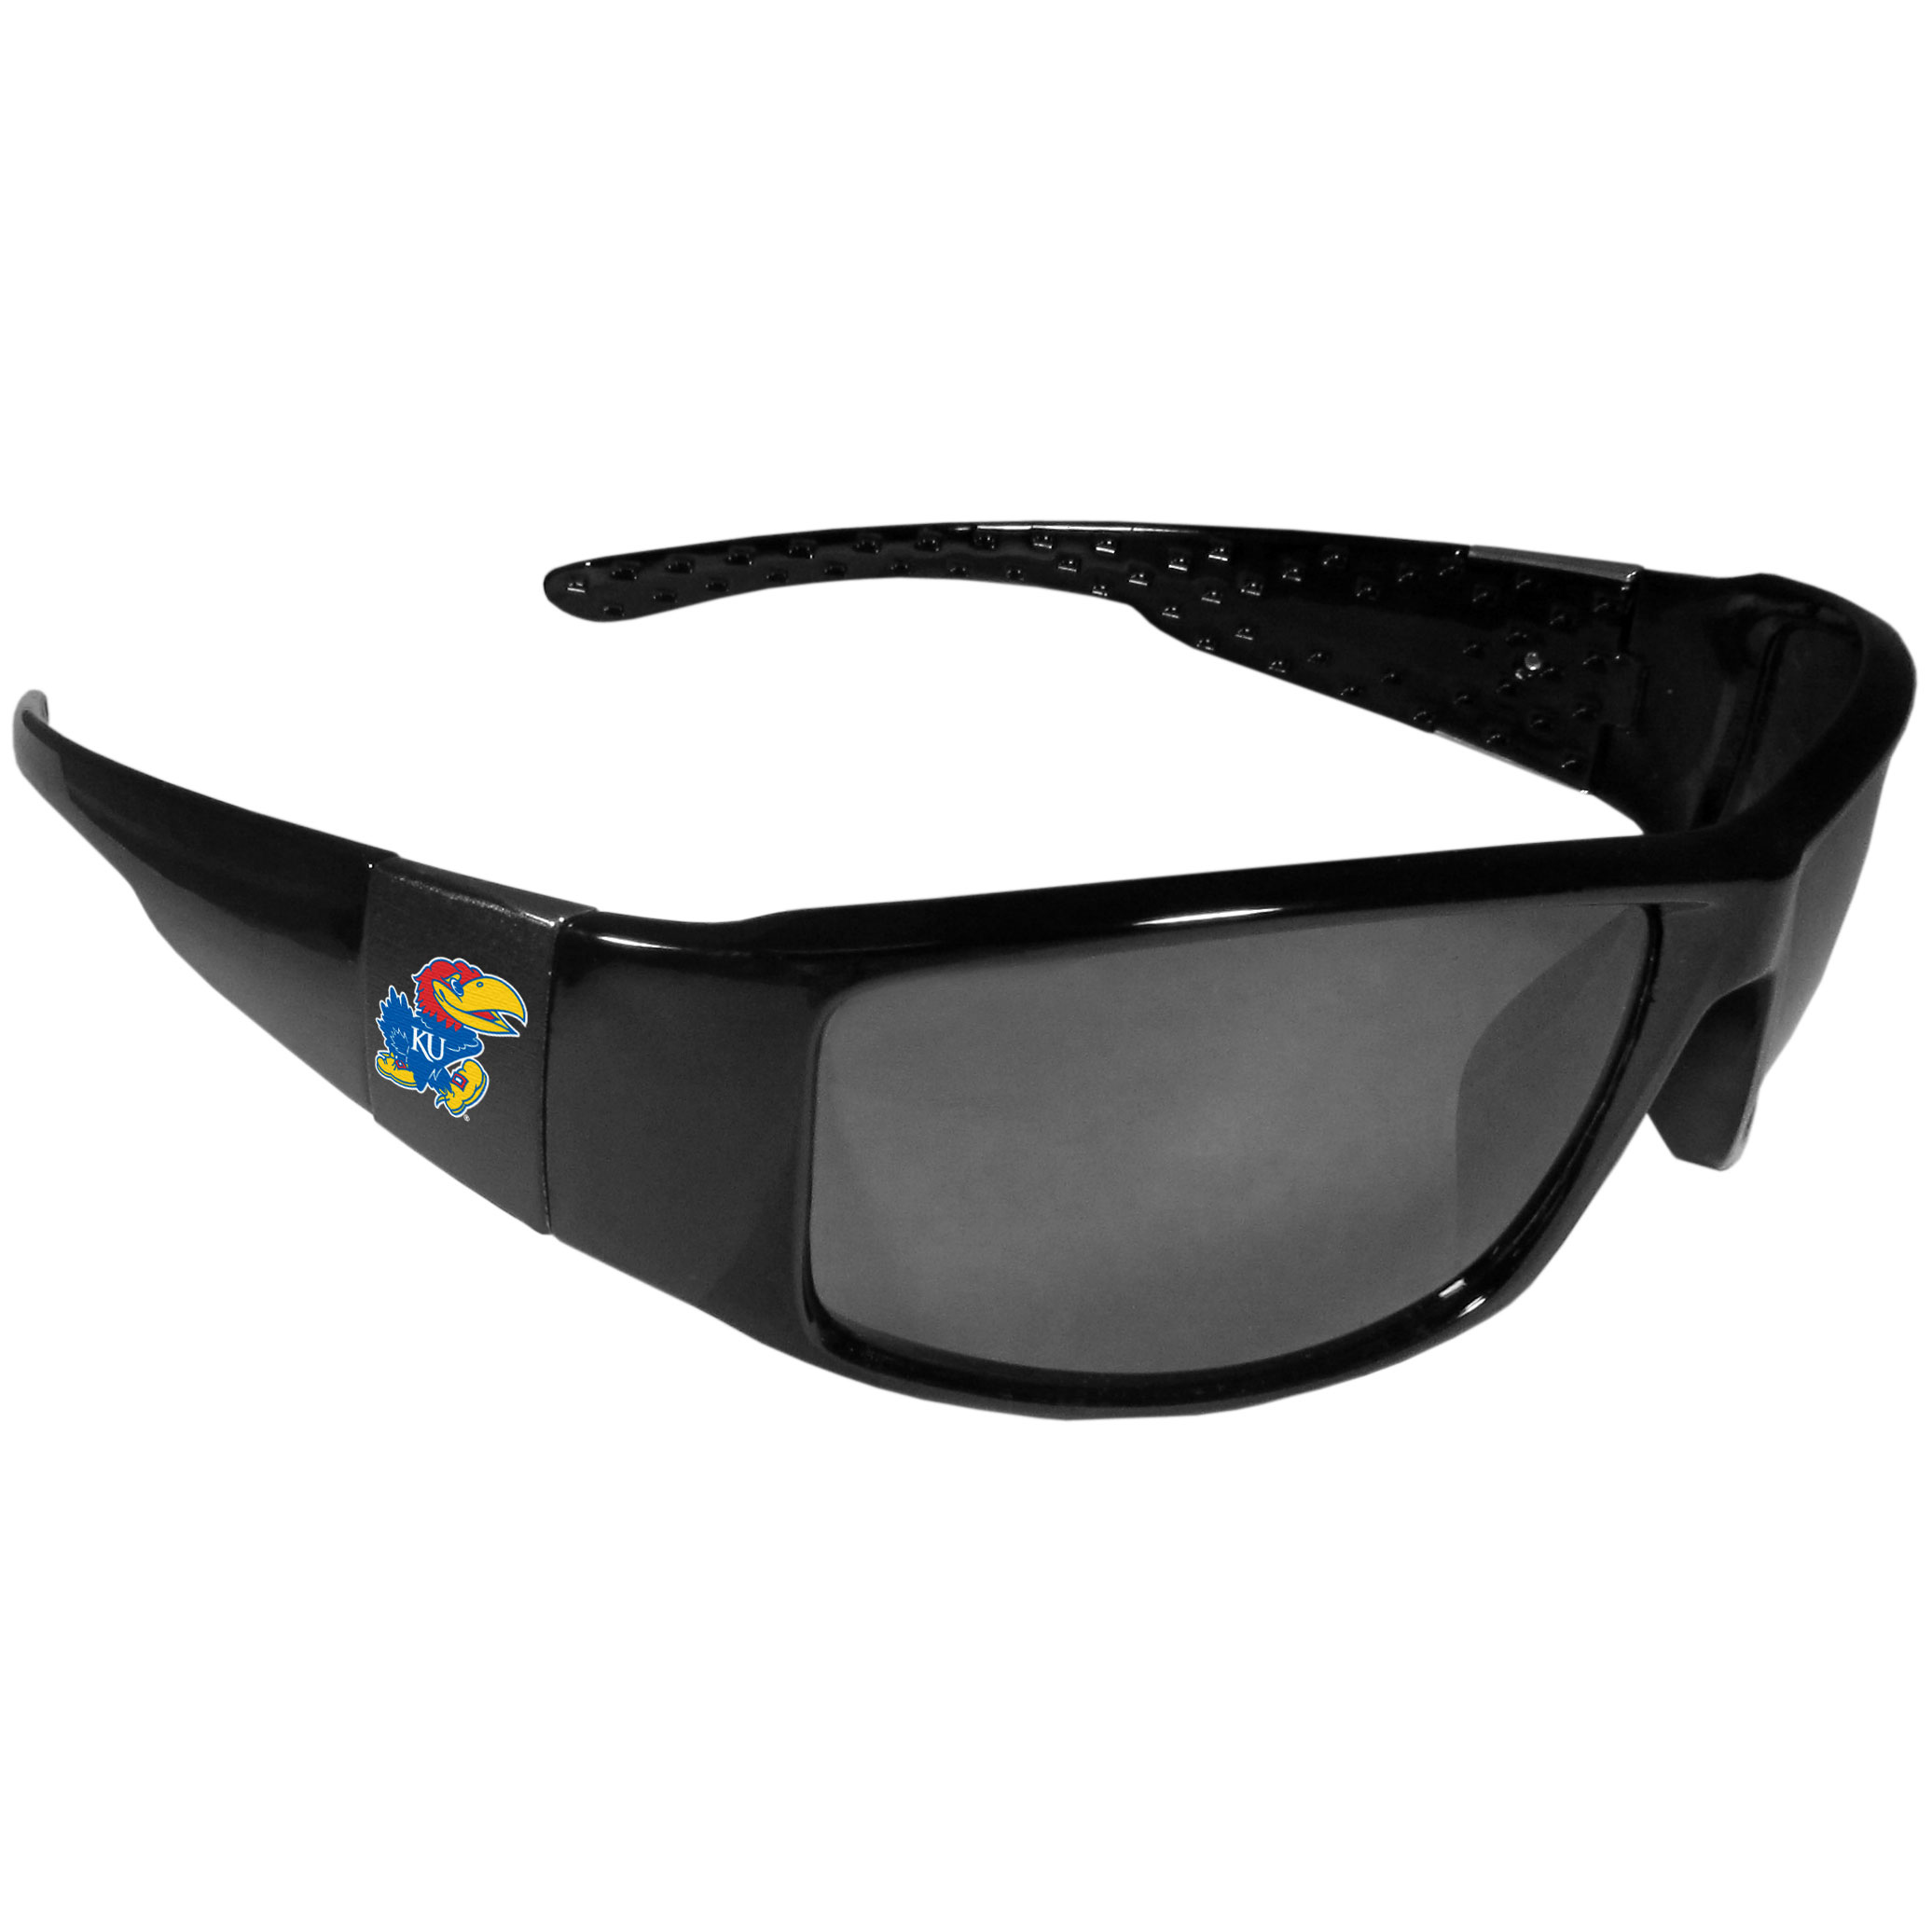 Kansas Jayhawks Black Wrap Sunglasses - These designer inspired frames have a sleek look in all black with  Kansas Jayhawks shields on each arm with a printed logo. The shades are perfect for any outdoor activity like; golfing, driving, hiking, fishing or cheering on the team at a tailgating event or at a home game day BBQ with a lens rating of 100% UVA/UVB for maximum UV protection. The high-quality frames are as durable as they are fashionable and with their classic look they are the perfect fan accessory that can be worn everyday for every occasion.